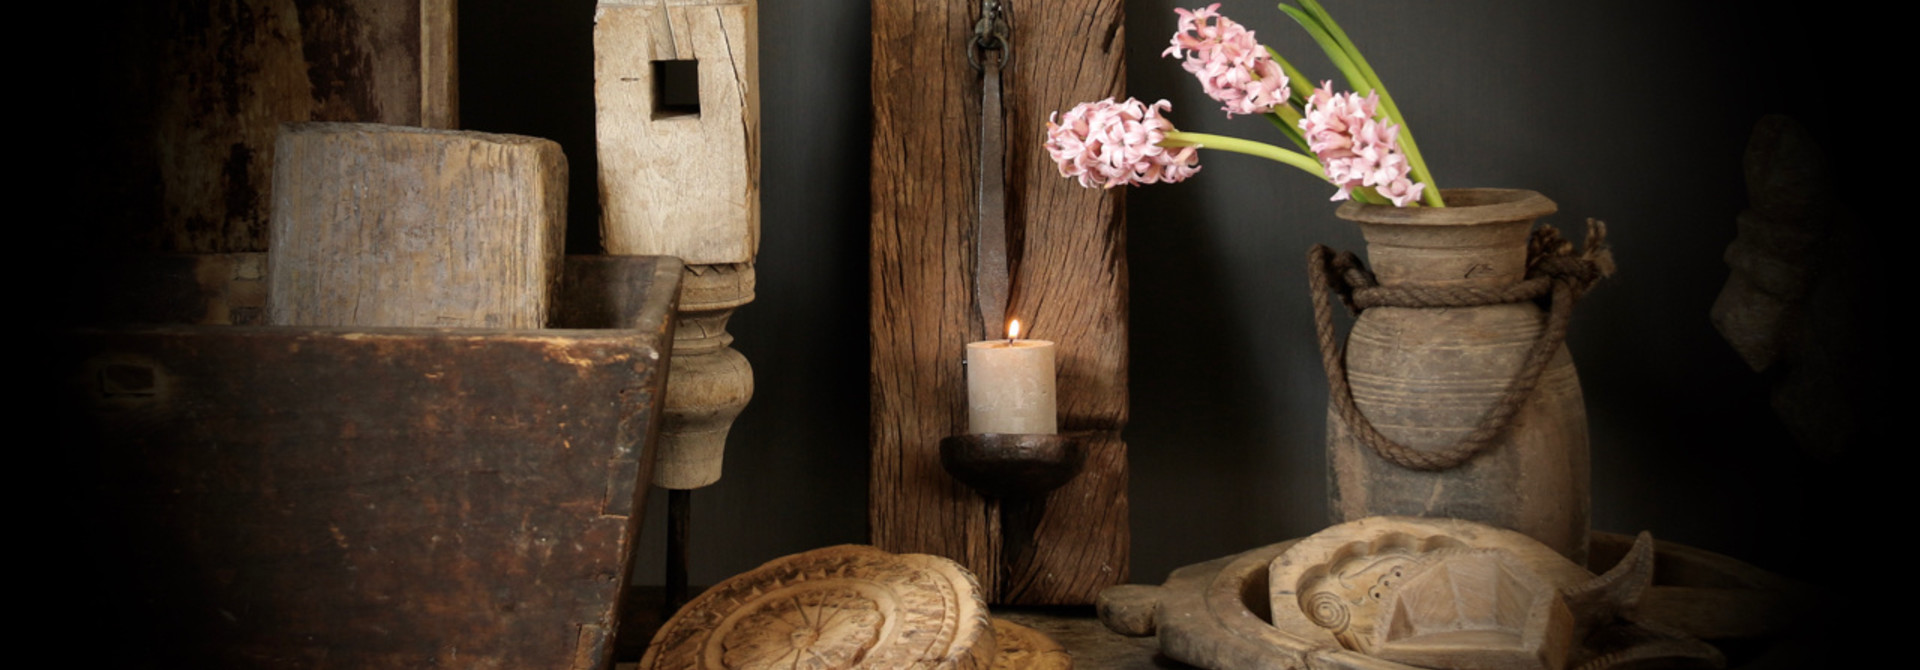 Houten Decoraties